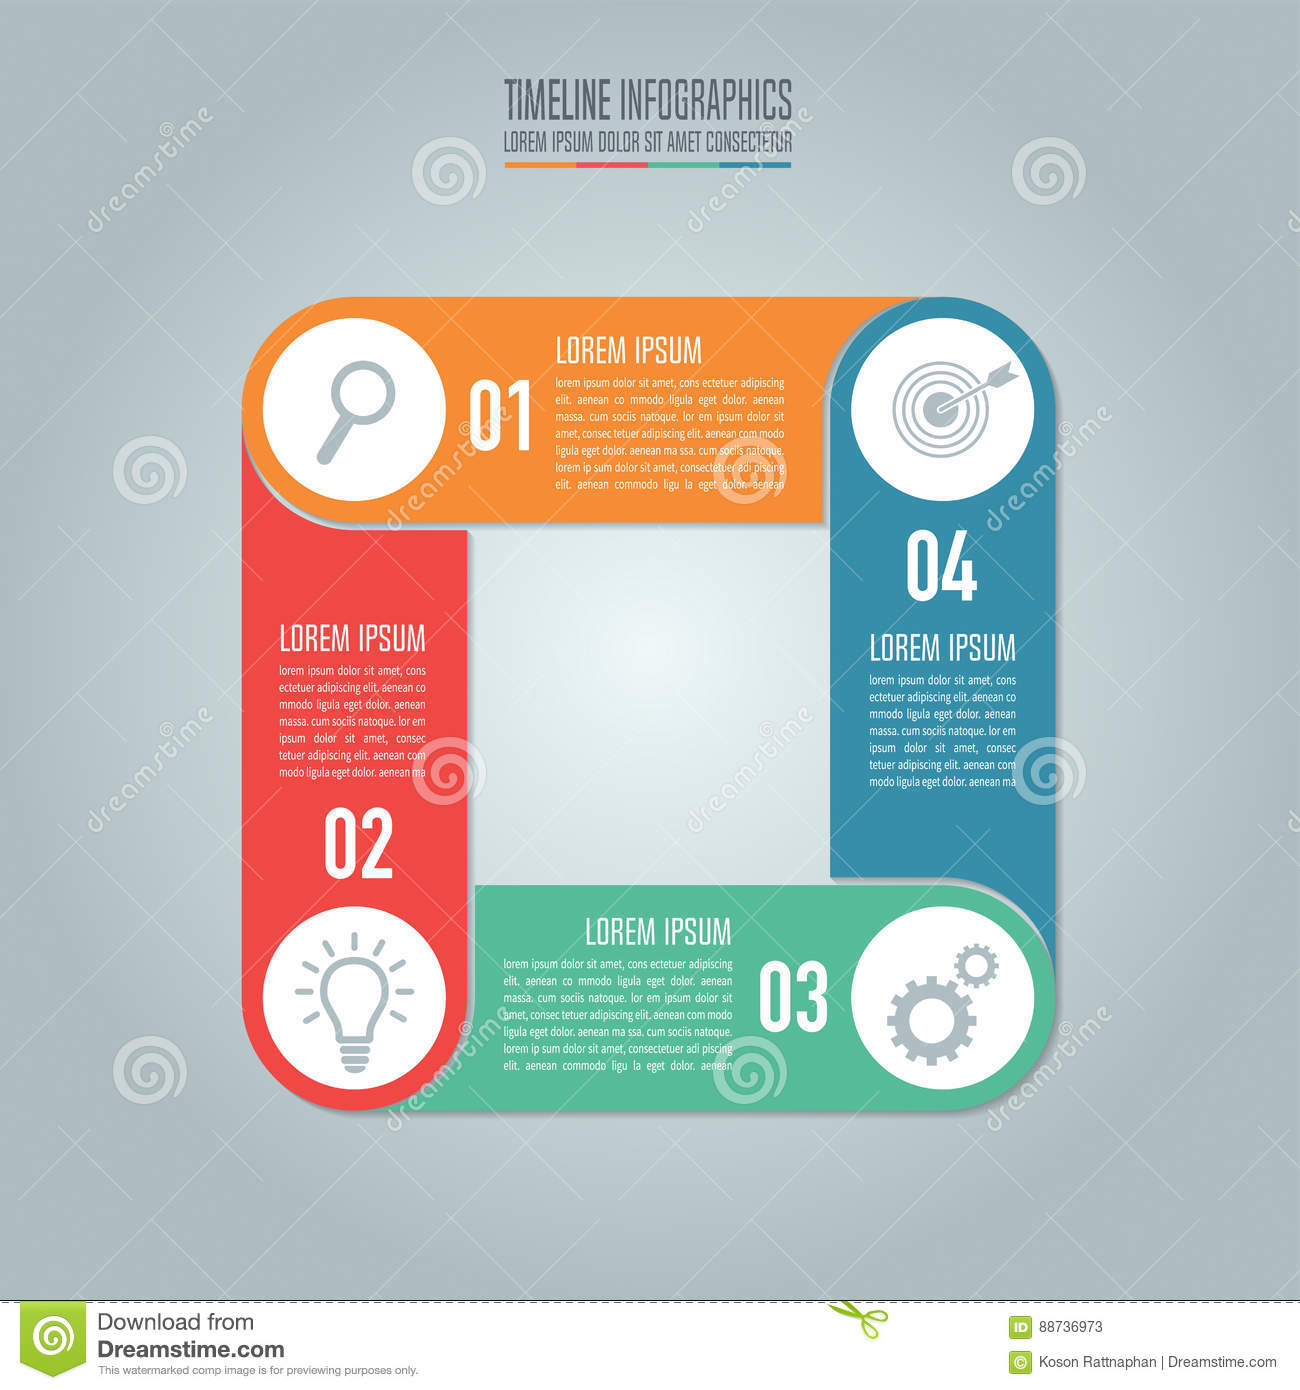 Timeline Infographic Design Vector And Marketing Icons For Prese ...